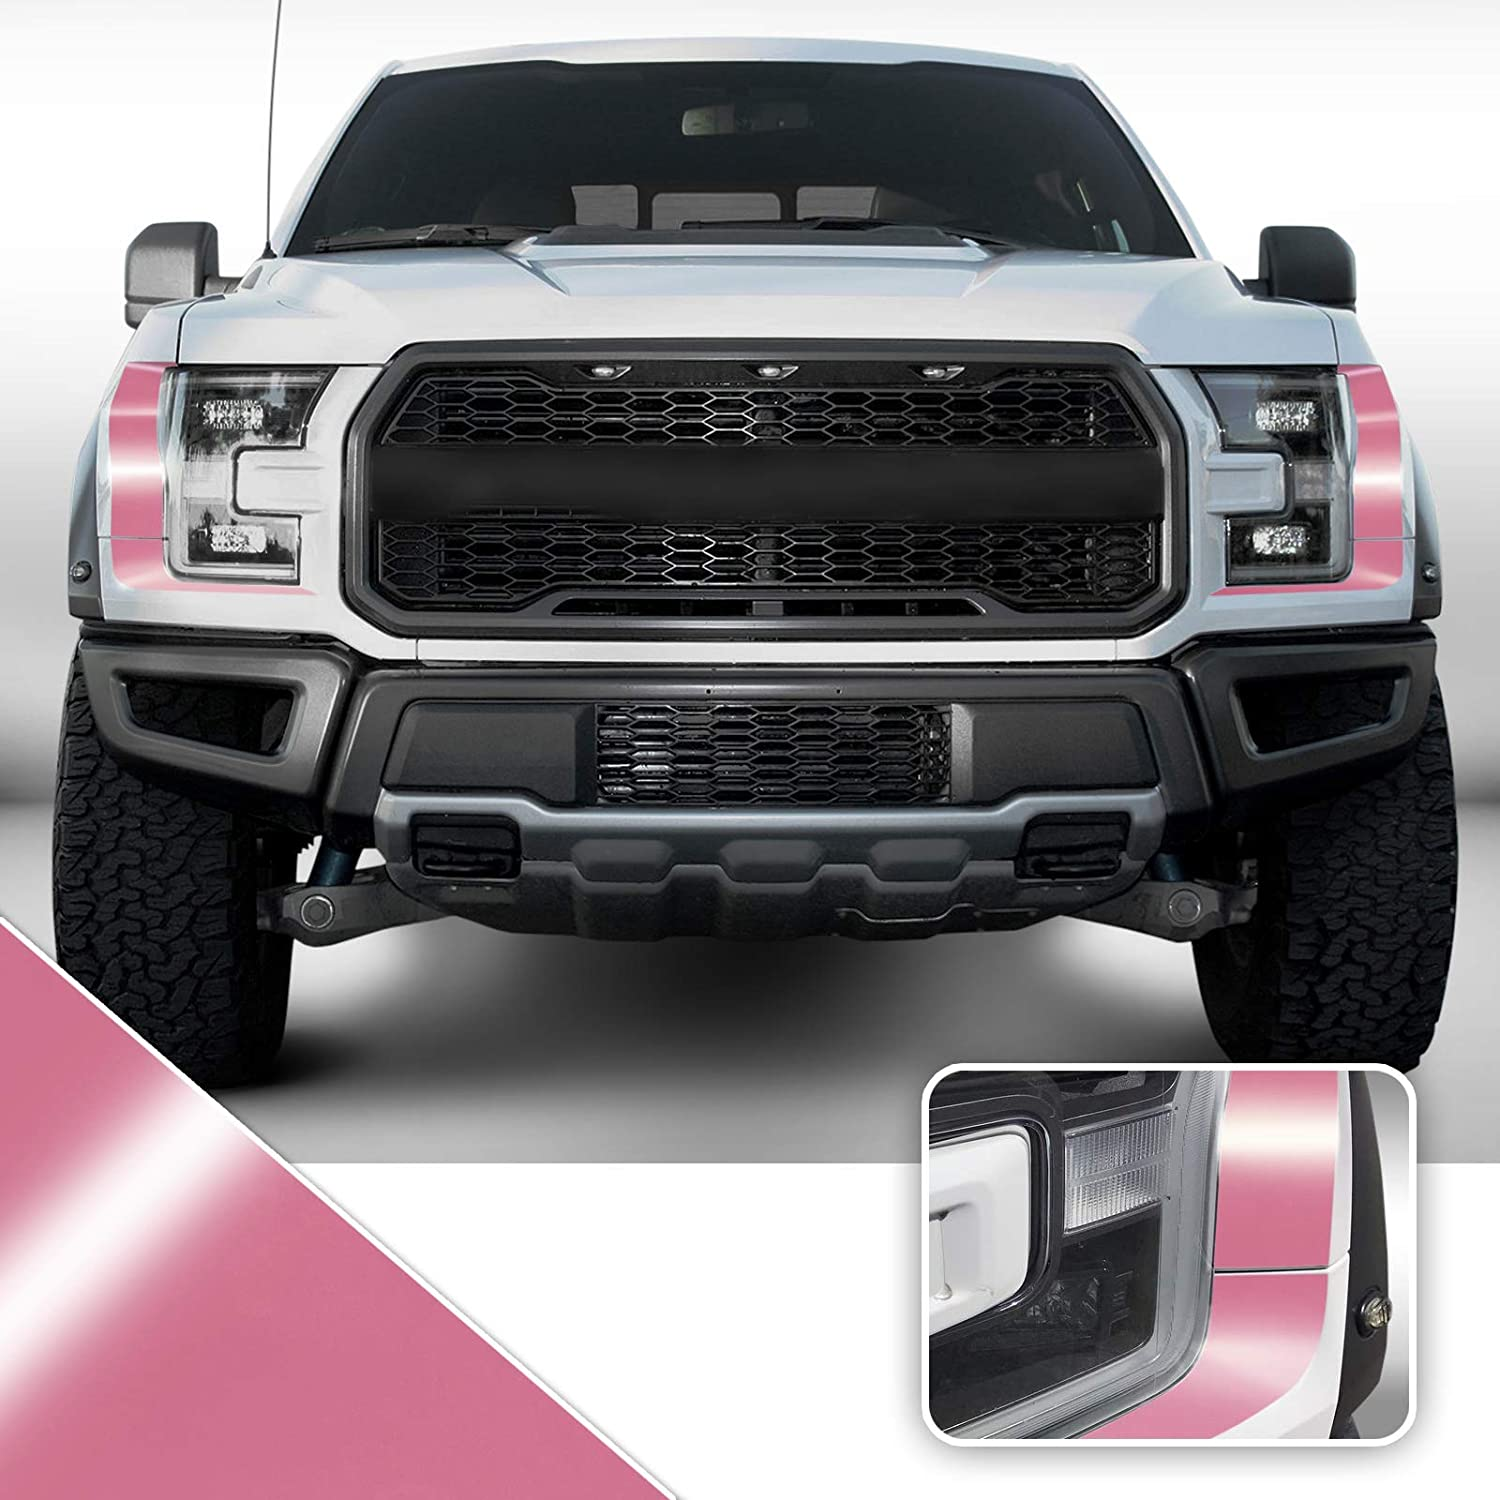 Headliight Accent Vinyl Graphic Overlay Wrap Kit Compatible with Ford F-150 Raptor 2018 2019 2020 - Gloss Pink